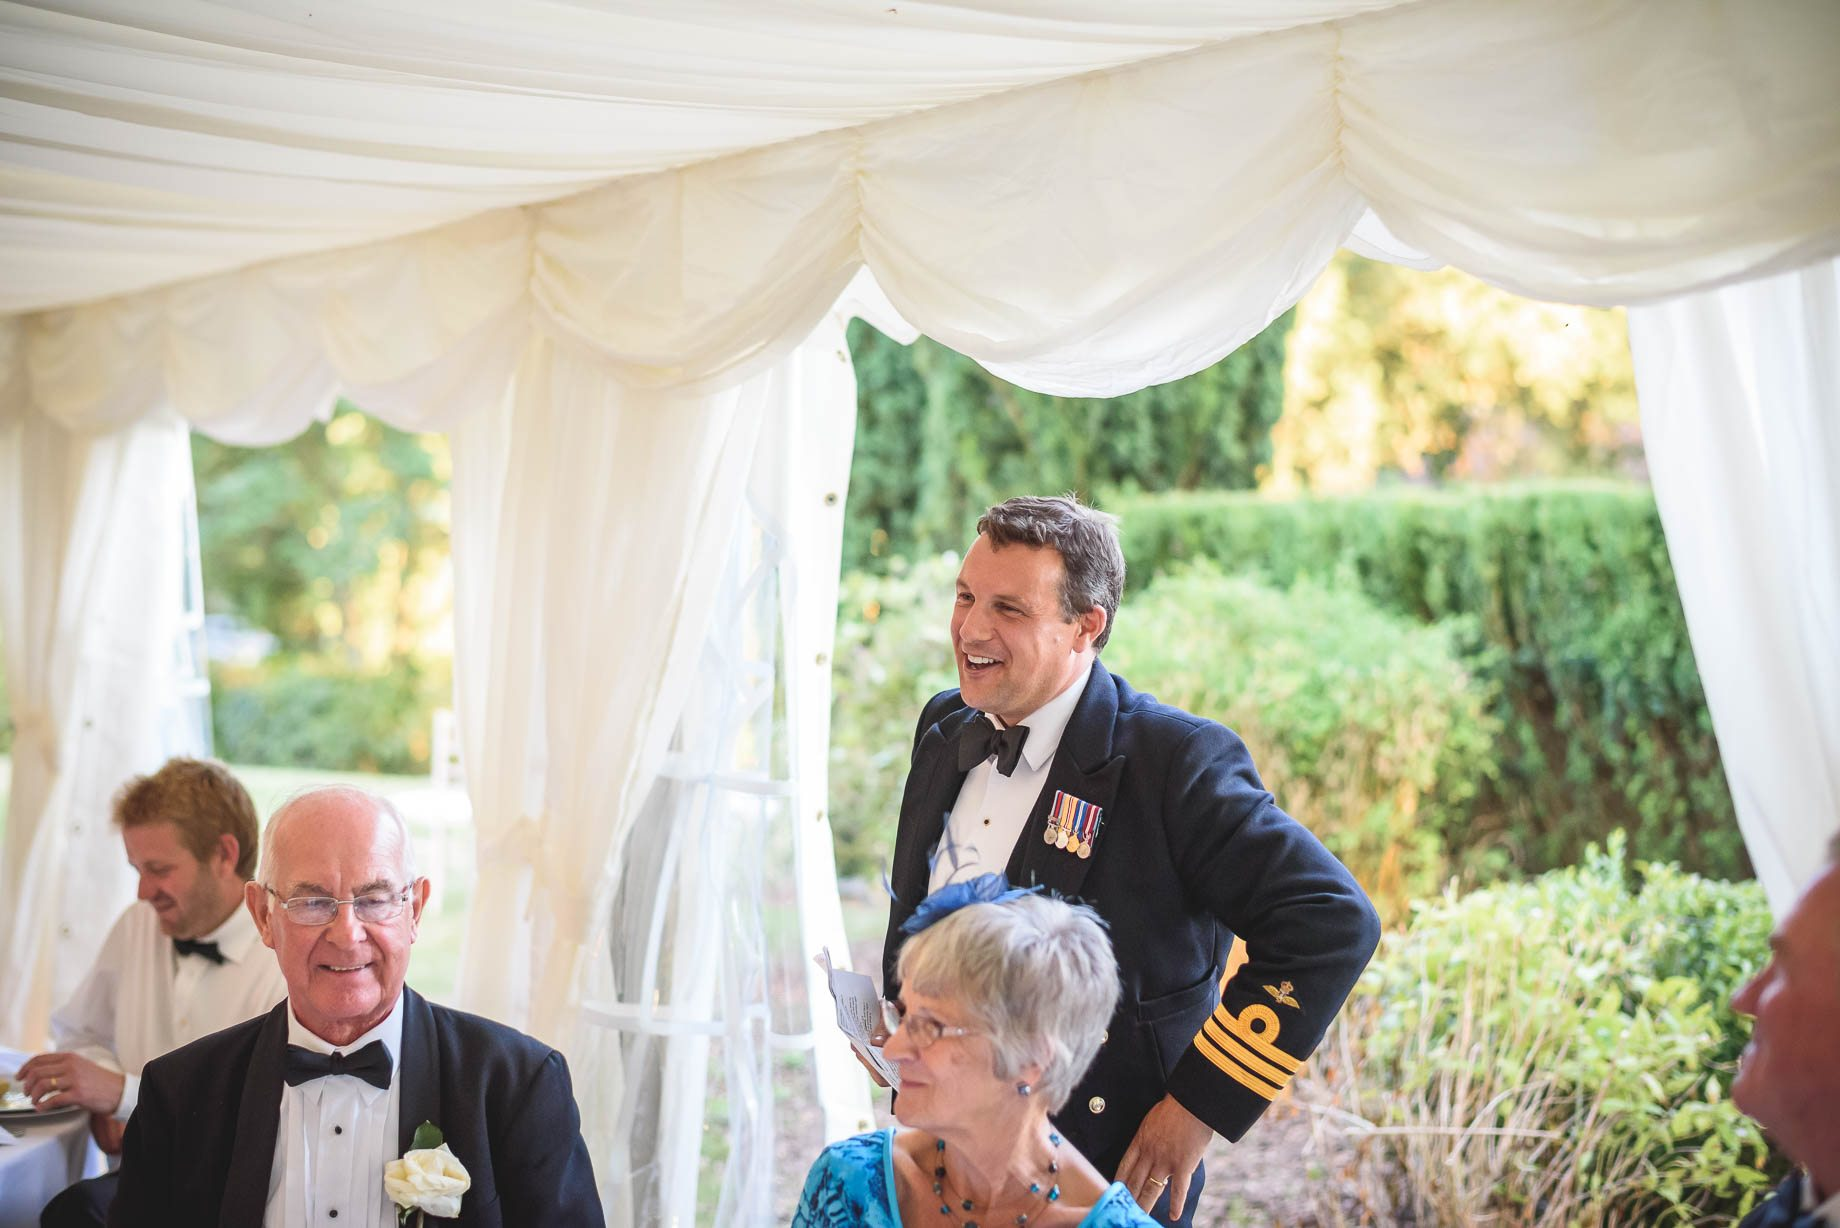 Hampshire wedding photography - Emily and Rob - Guy Collier Photography (164 of 192)